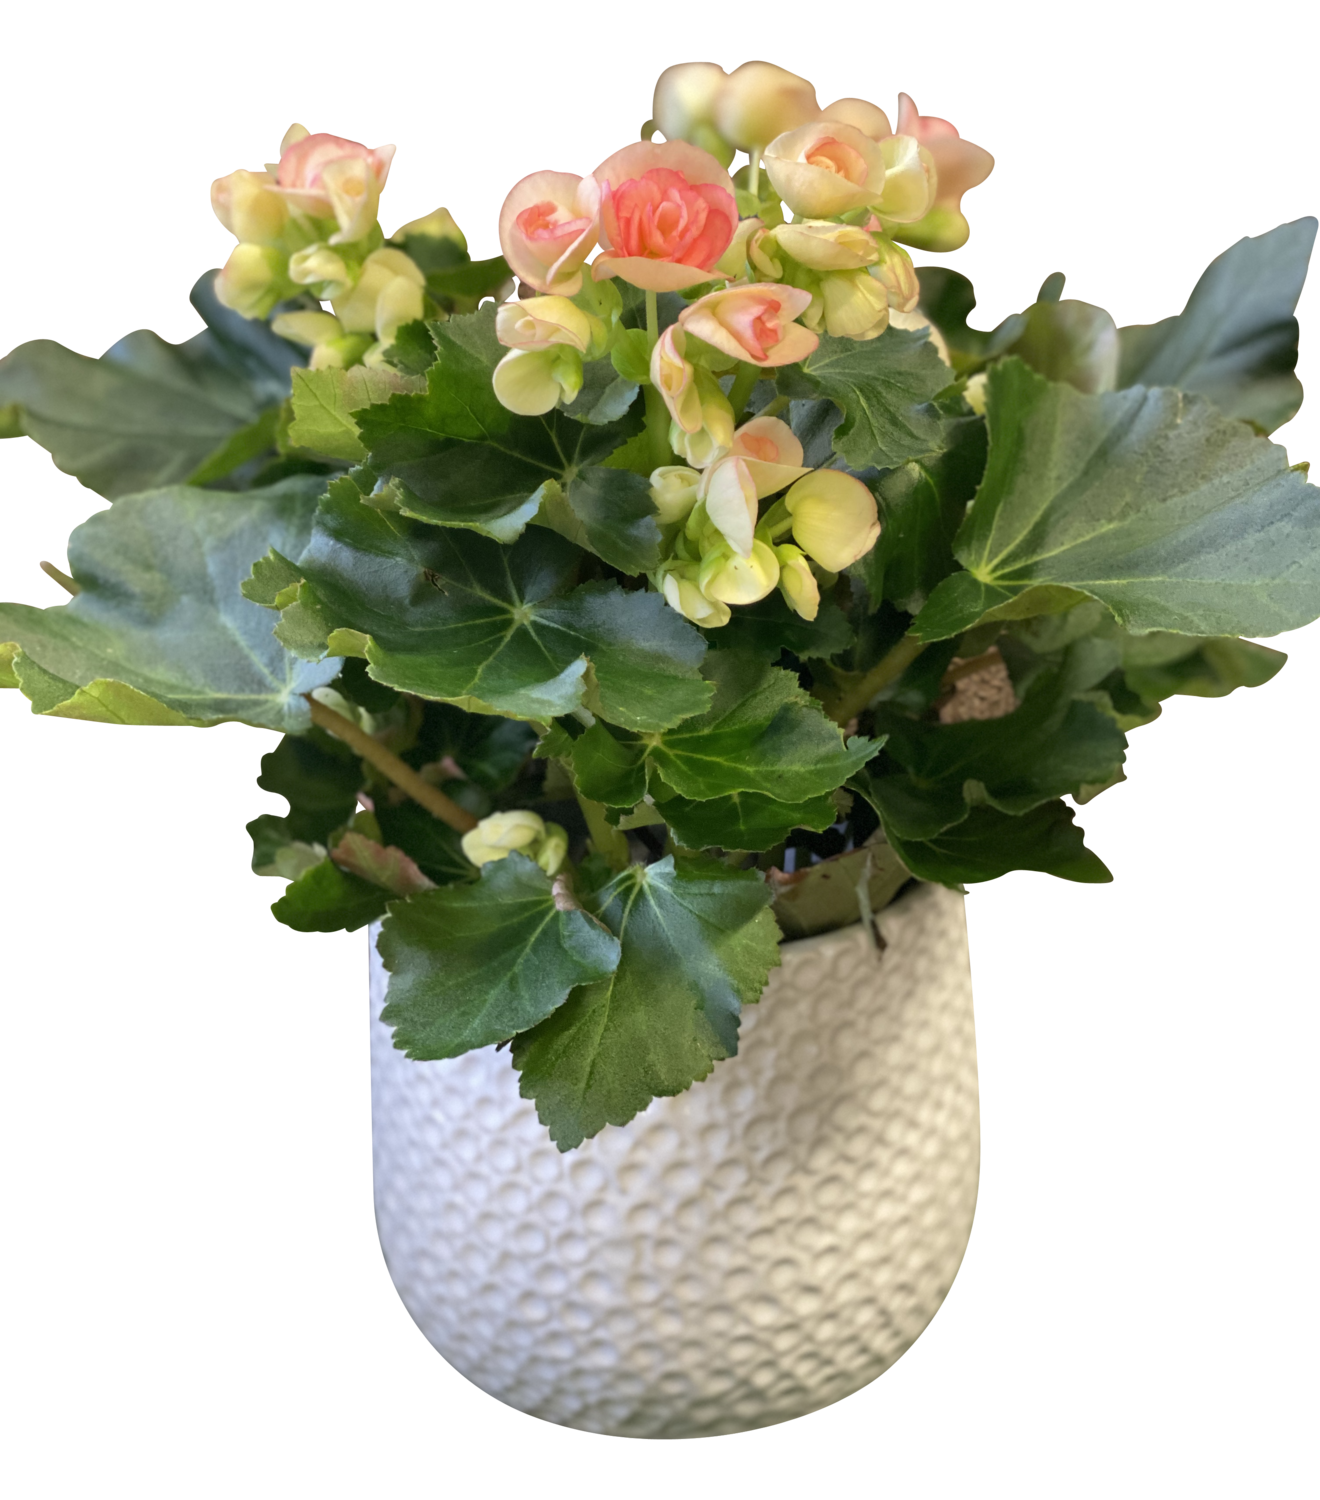 Florist Begonia in Decorative Pot